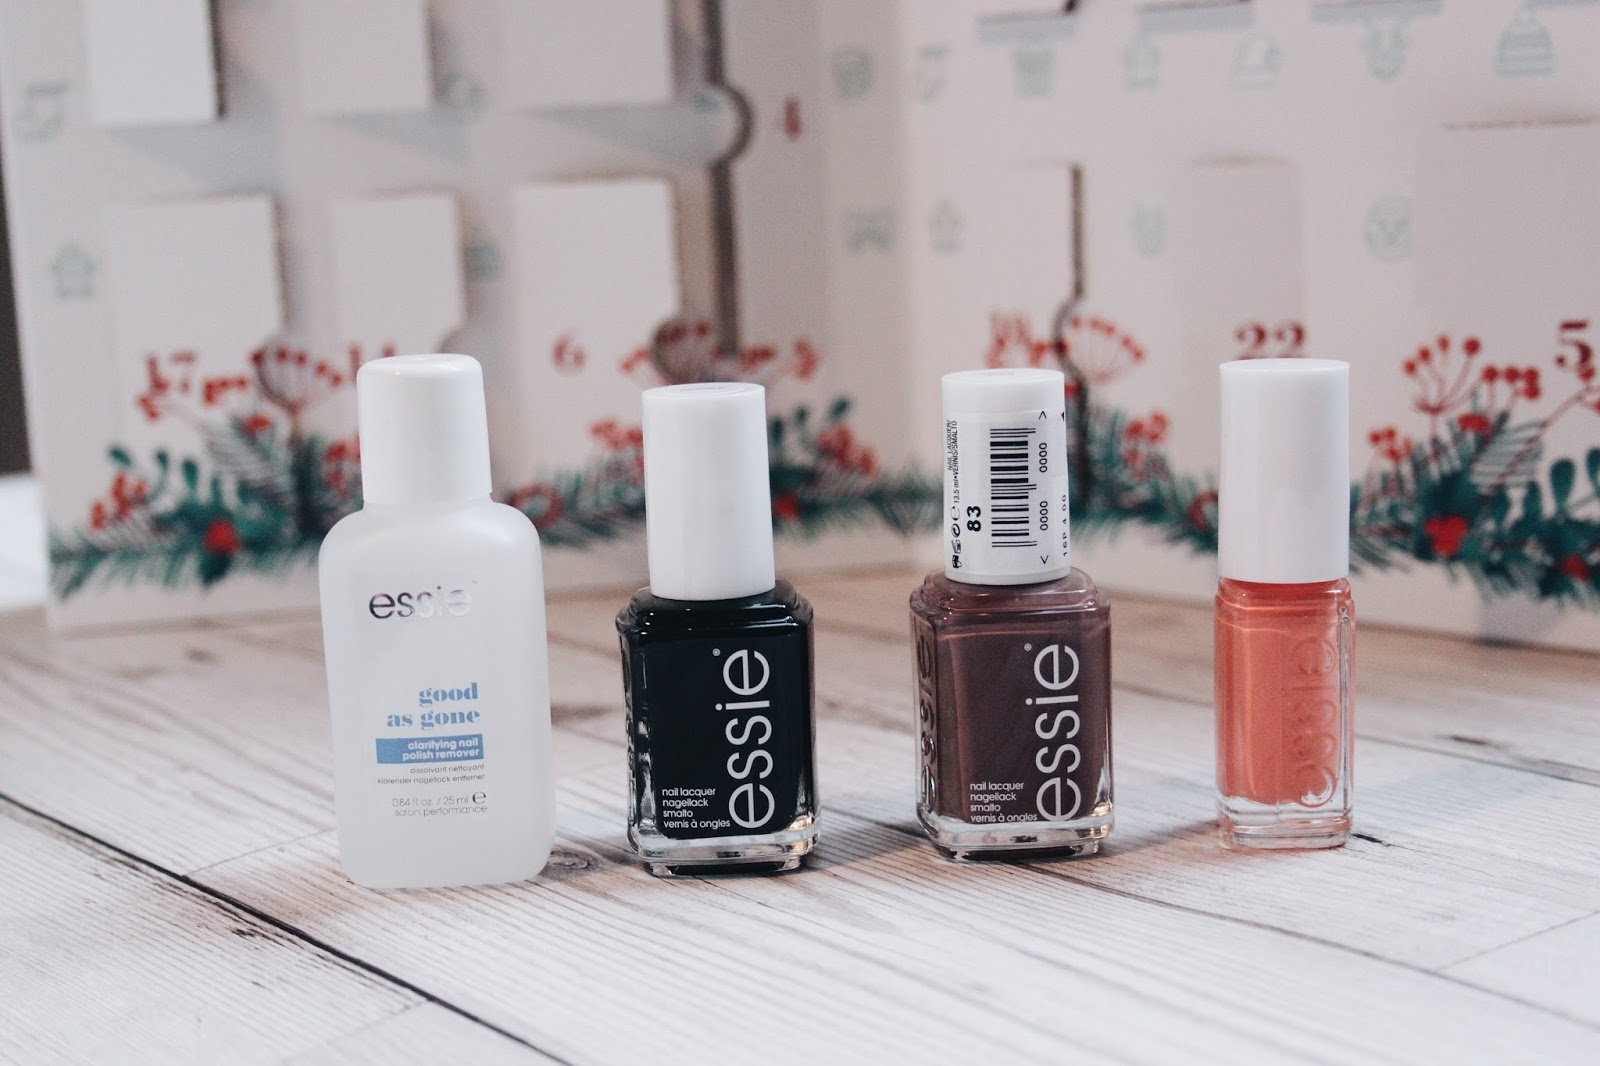 Essie Days 5-8